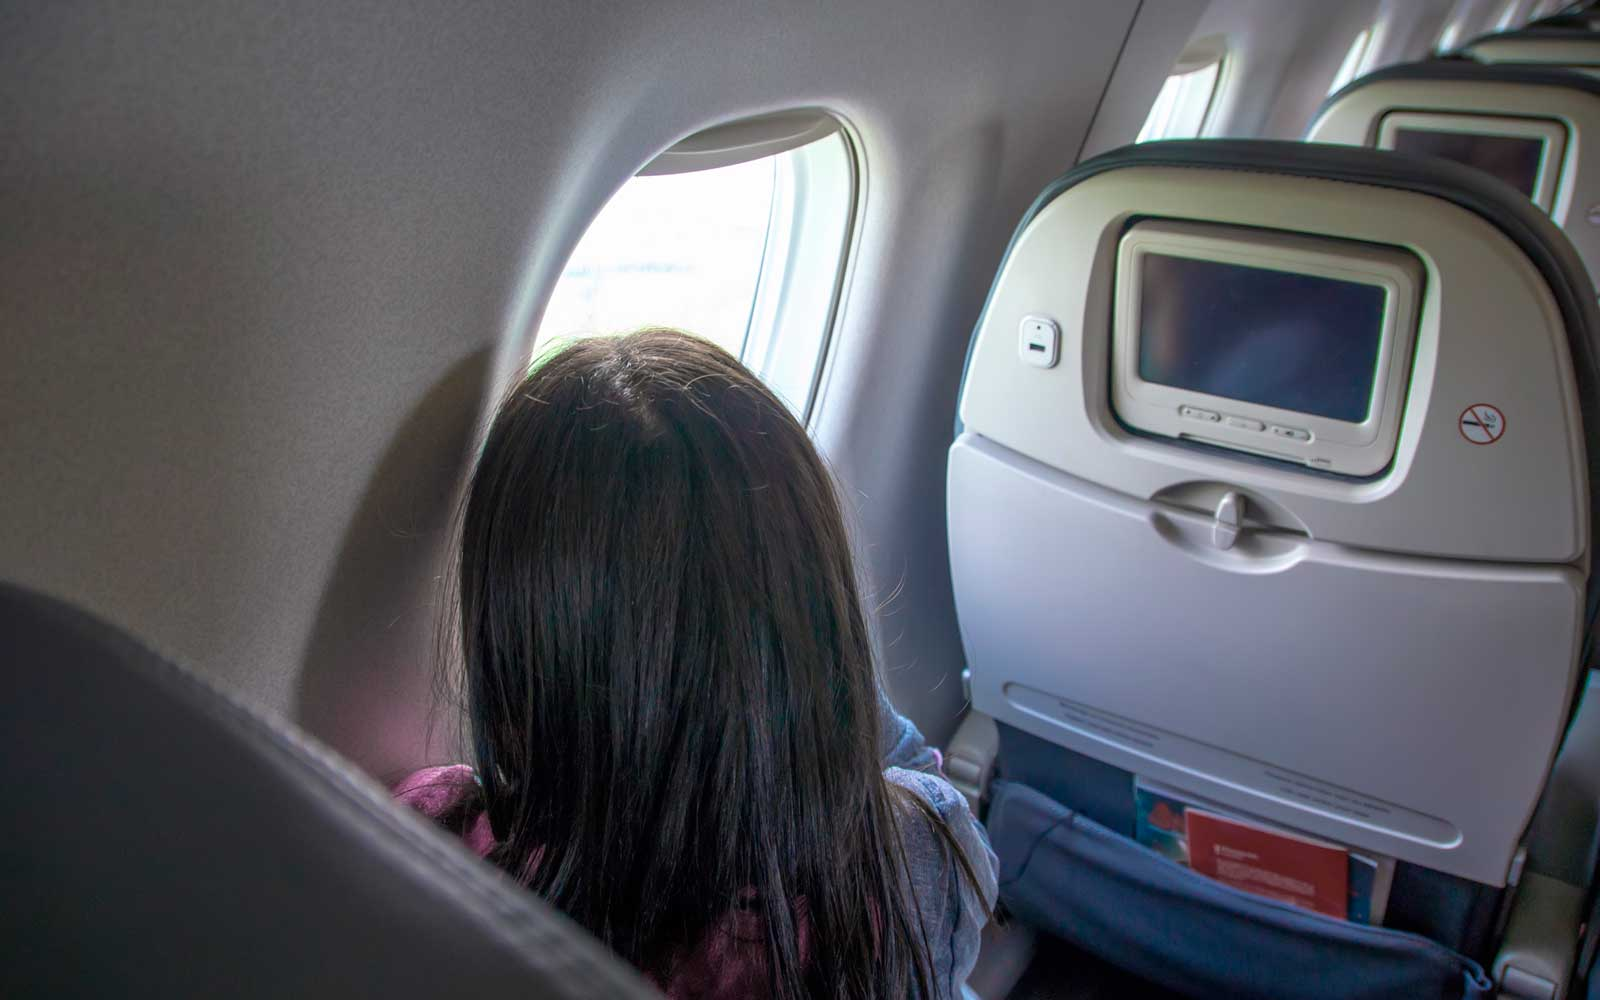 Parents Accidentally Leave Their Sleeping Child Behind on Flight